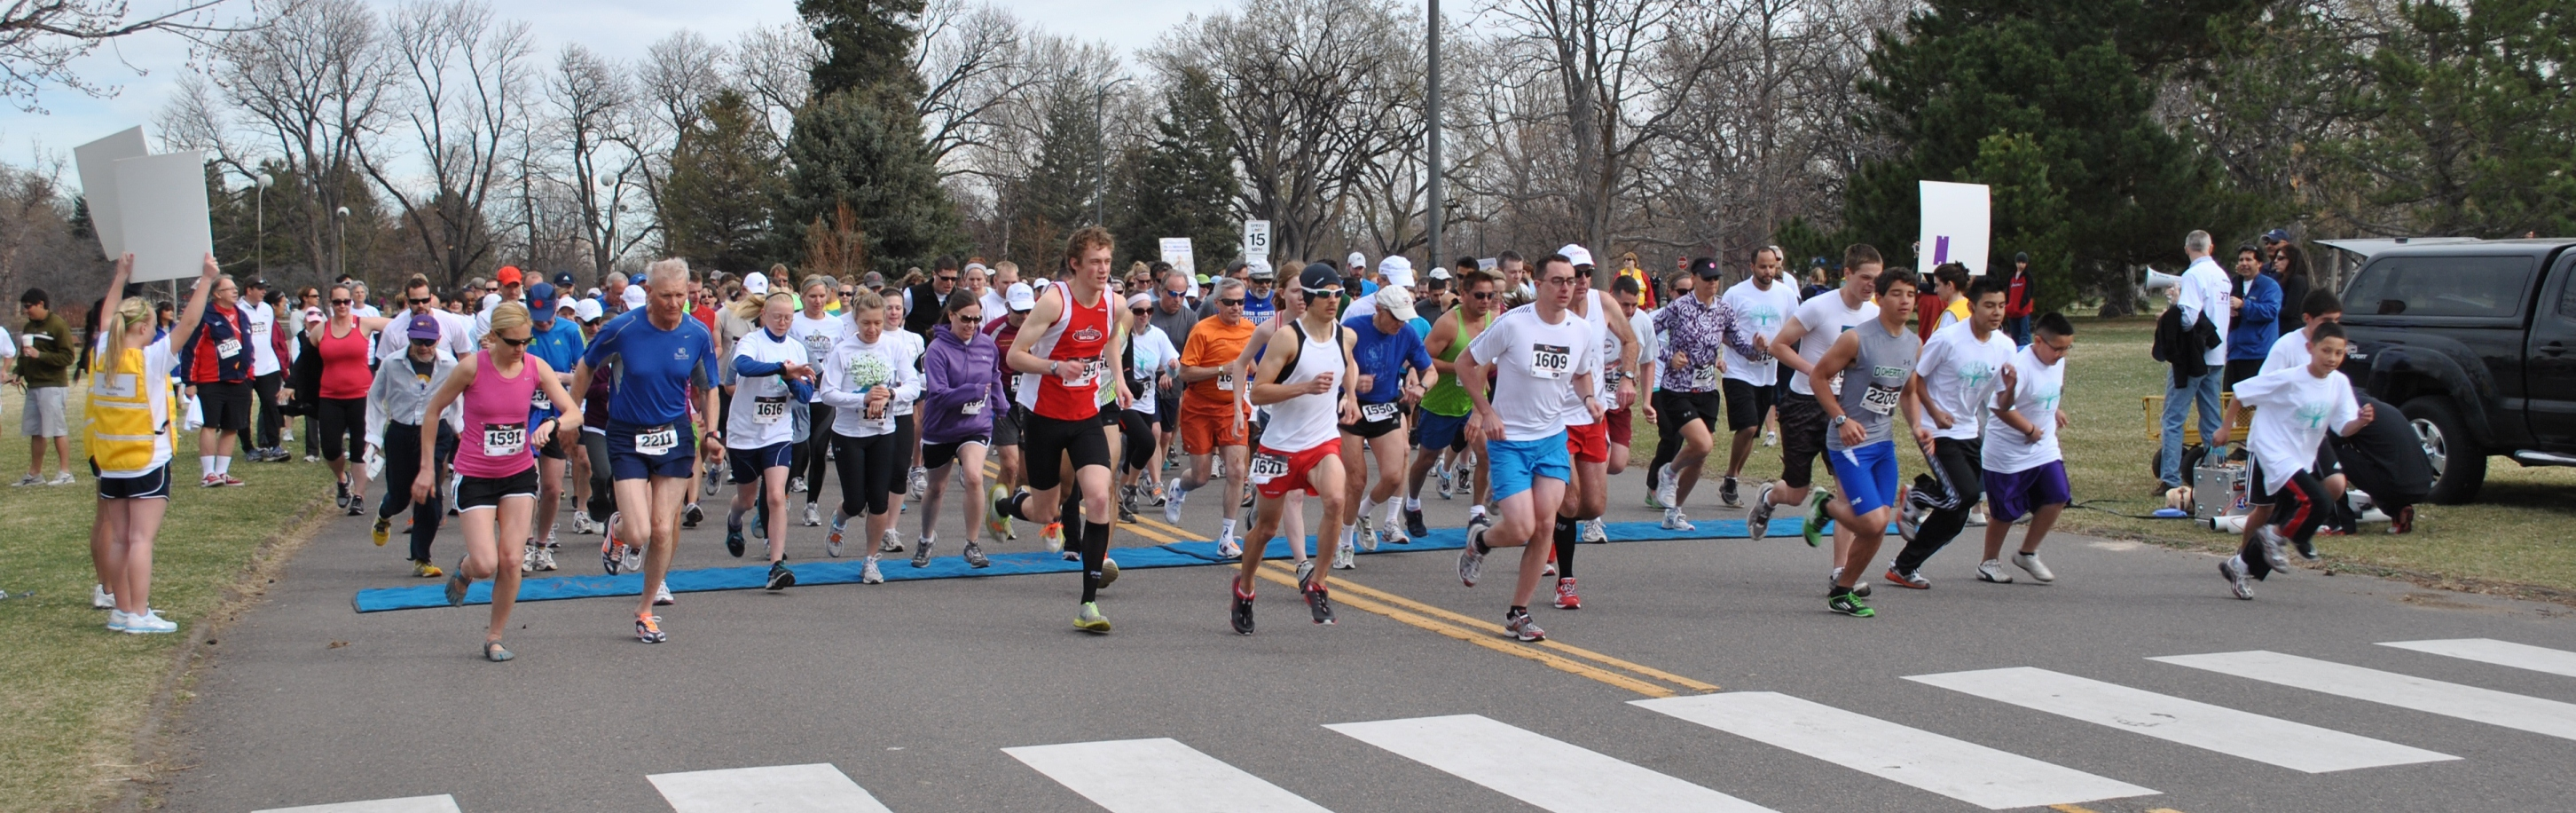 Runners leaving start line during a race